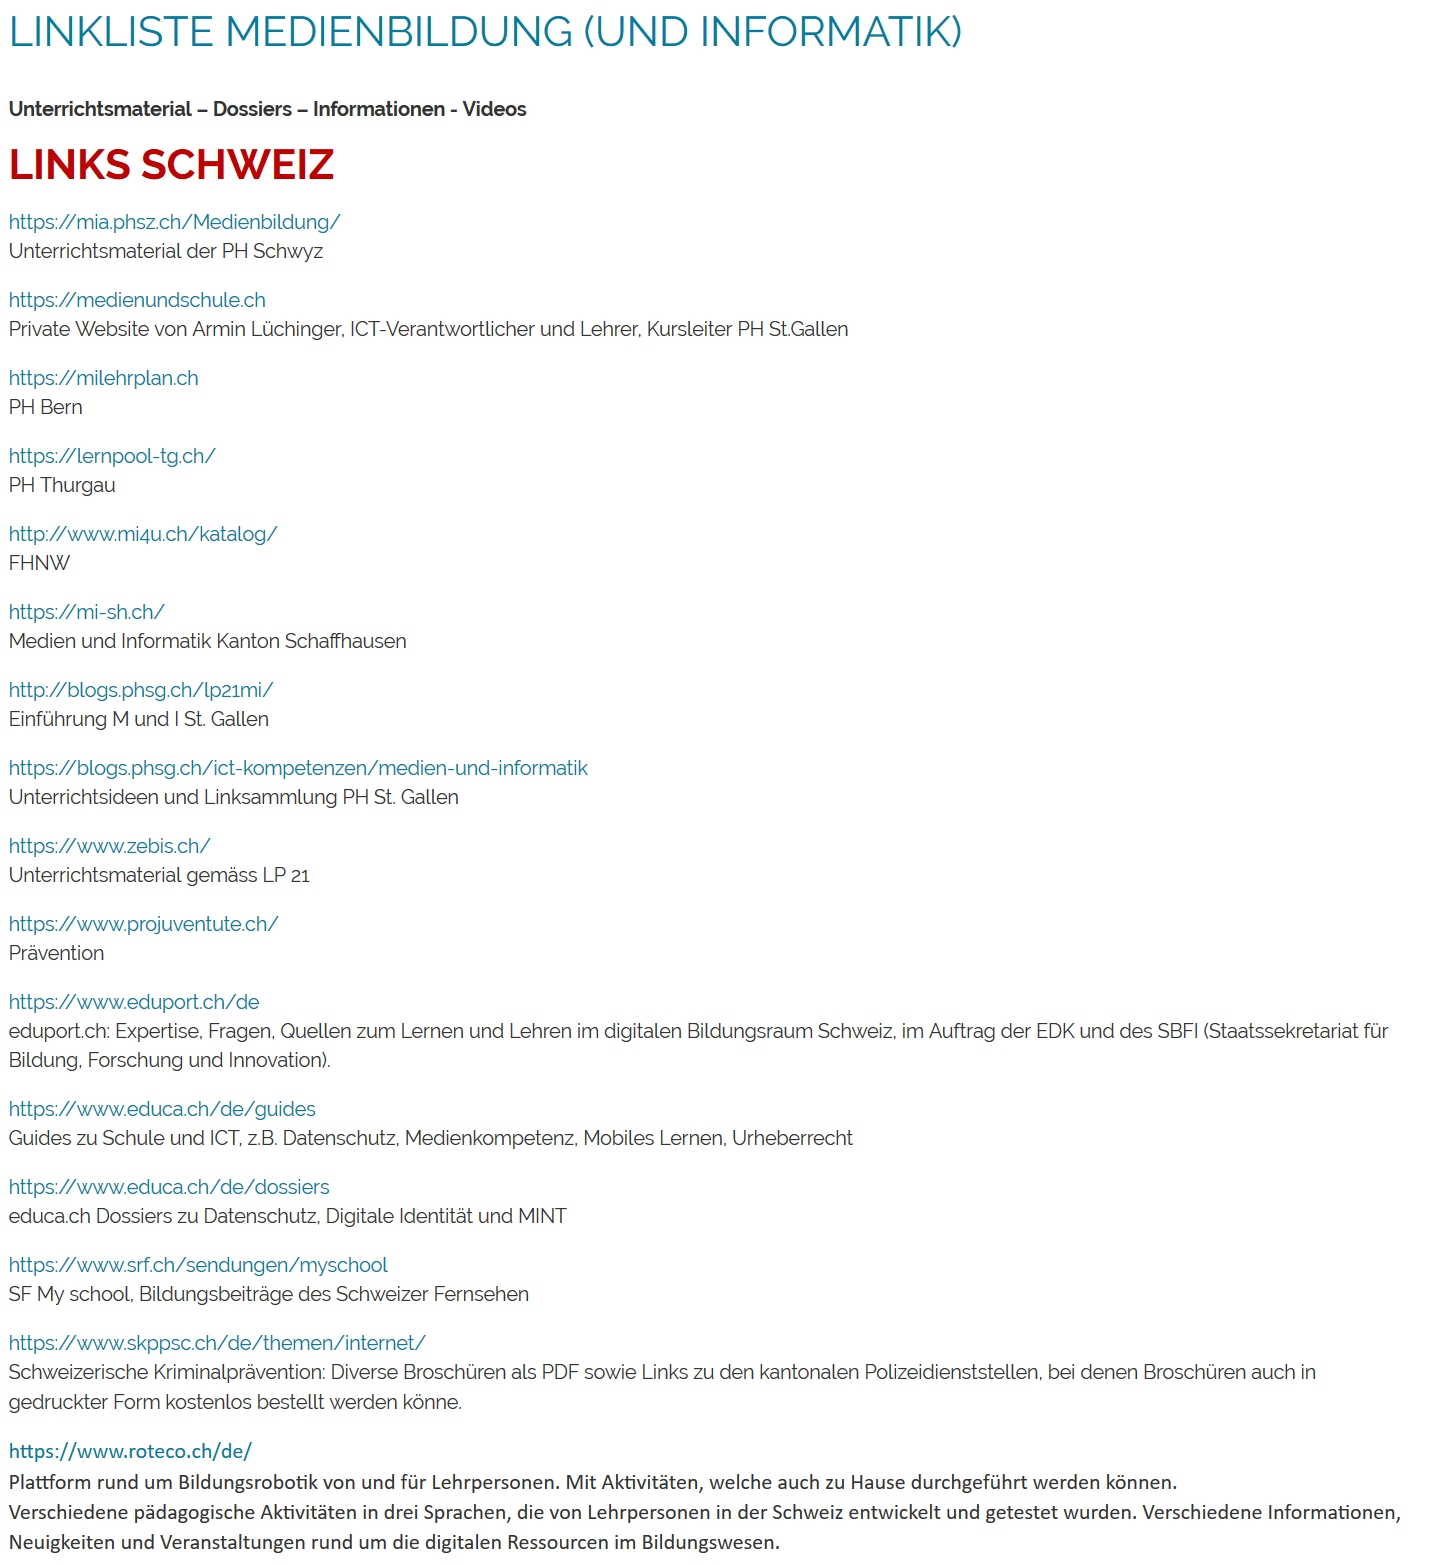 Linkliste Medienbildung Screenshot